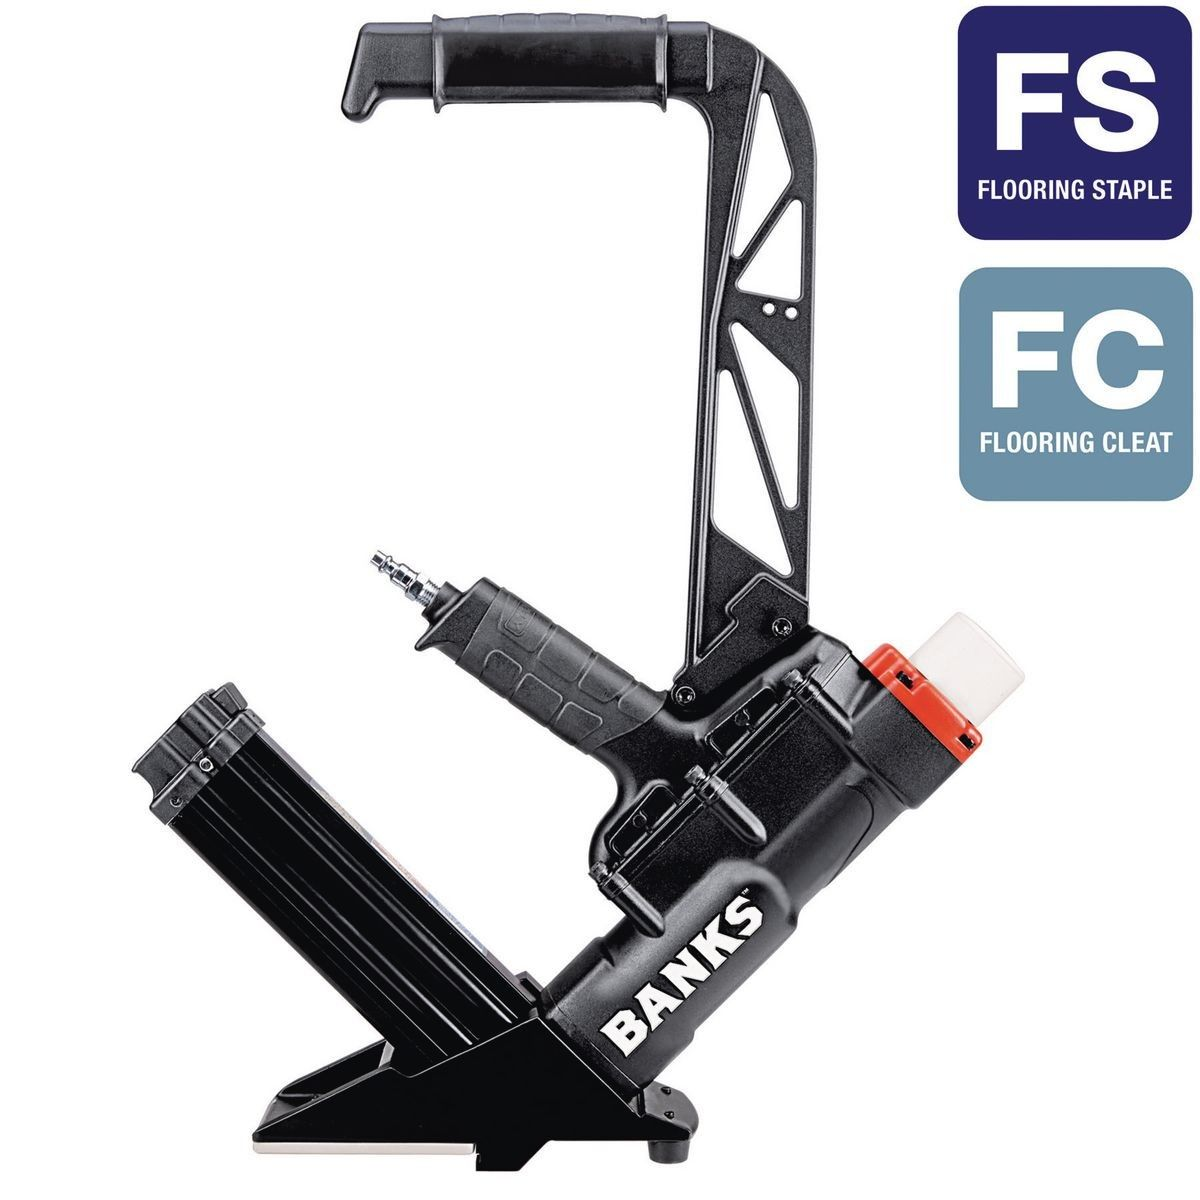 2 In 1 Flooring Air Nailer Stapler Air Nailer Nailer Flooring